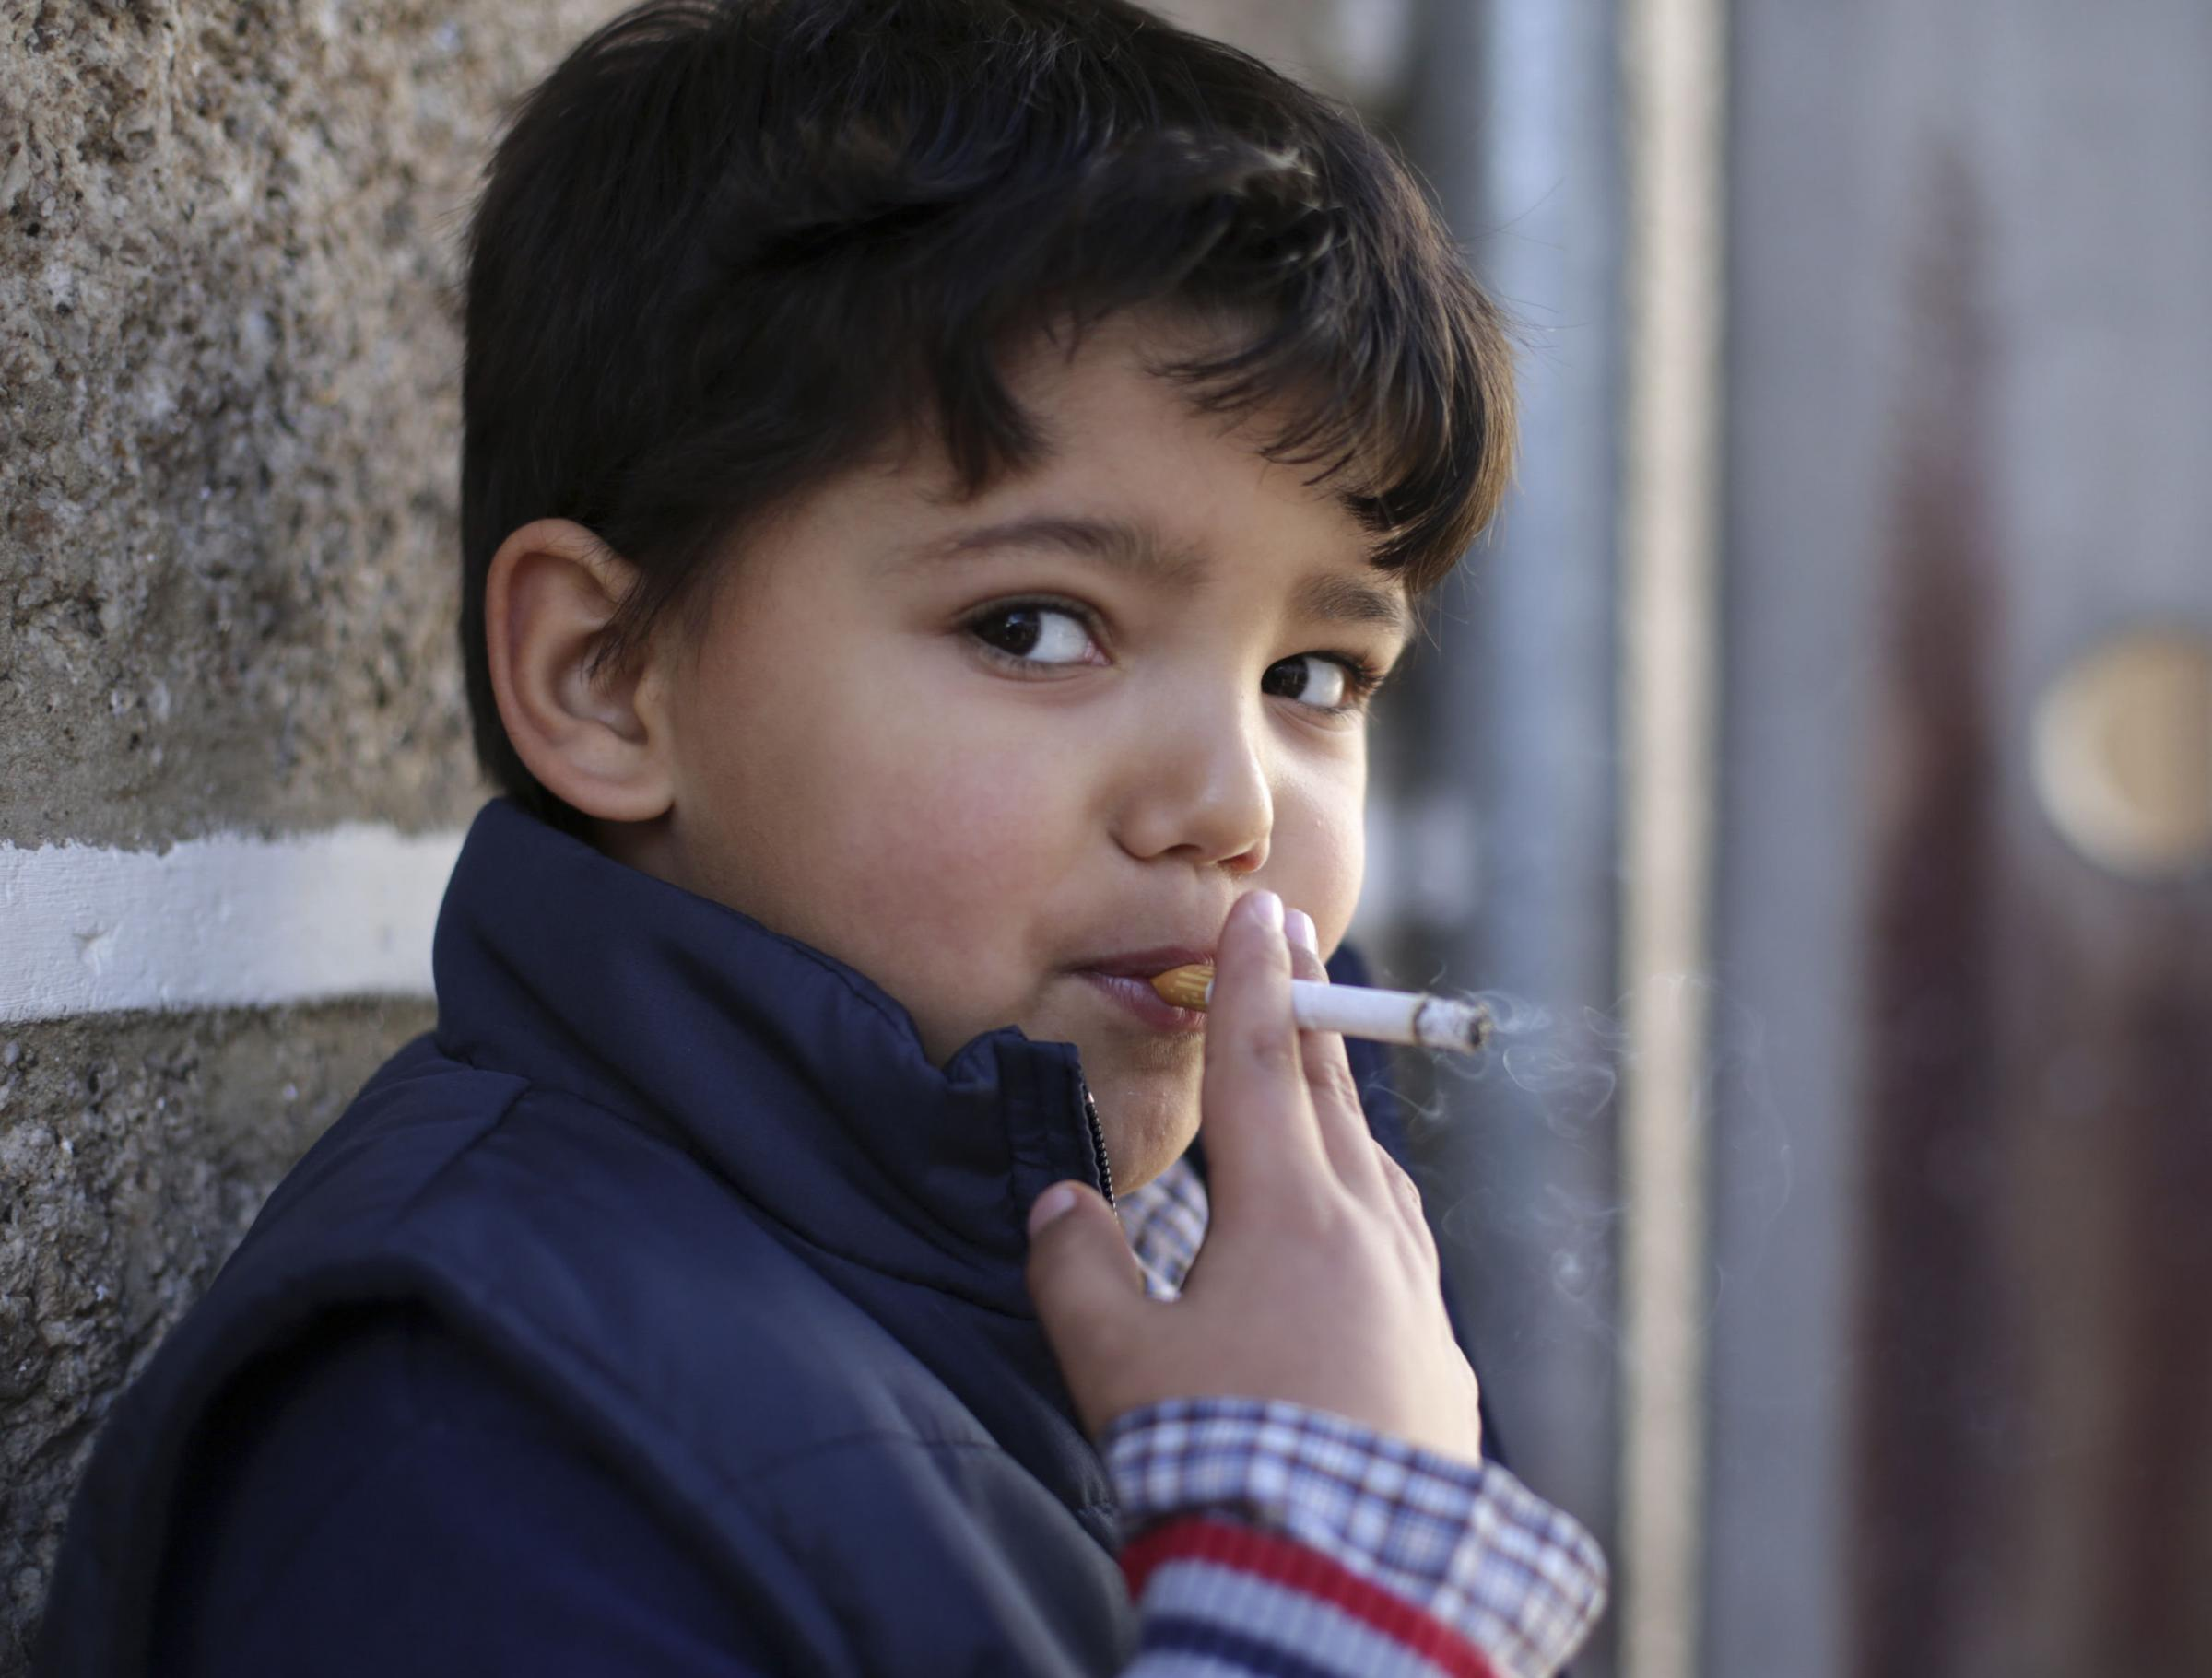 Fernando, 6-years-old, smokes a cigarette in the village of Vale de Salgueiro, northern Portugal, during the local Kings' Feast Saturday, Jan. 6, 2018. The village's Epiphany celebrations, called Kings' Feast, feature a tradition that each yea